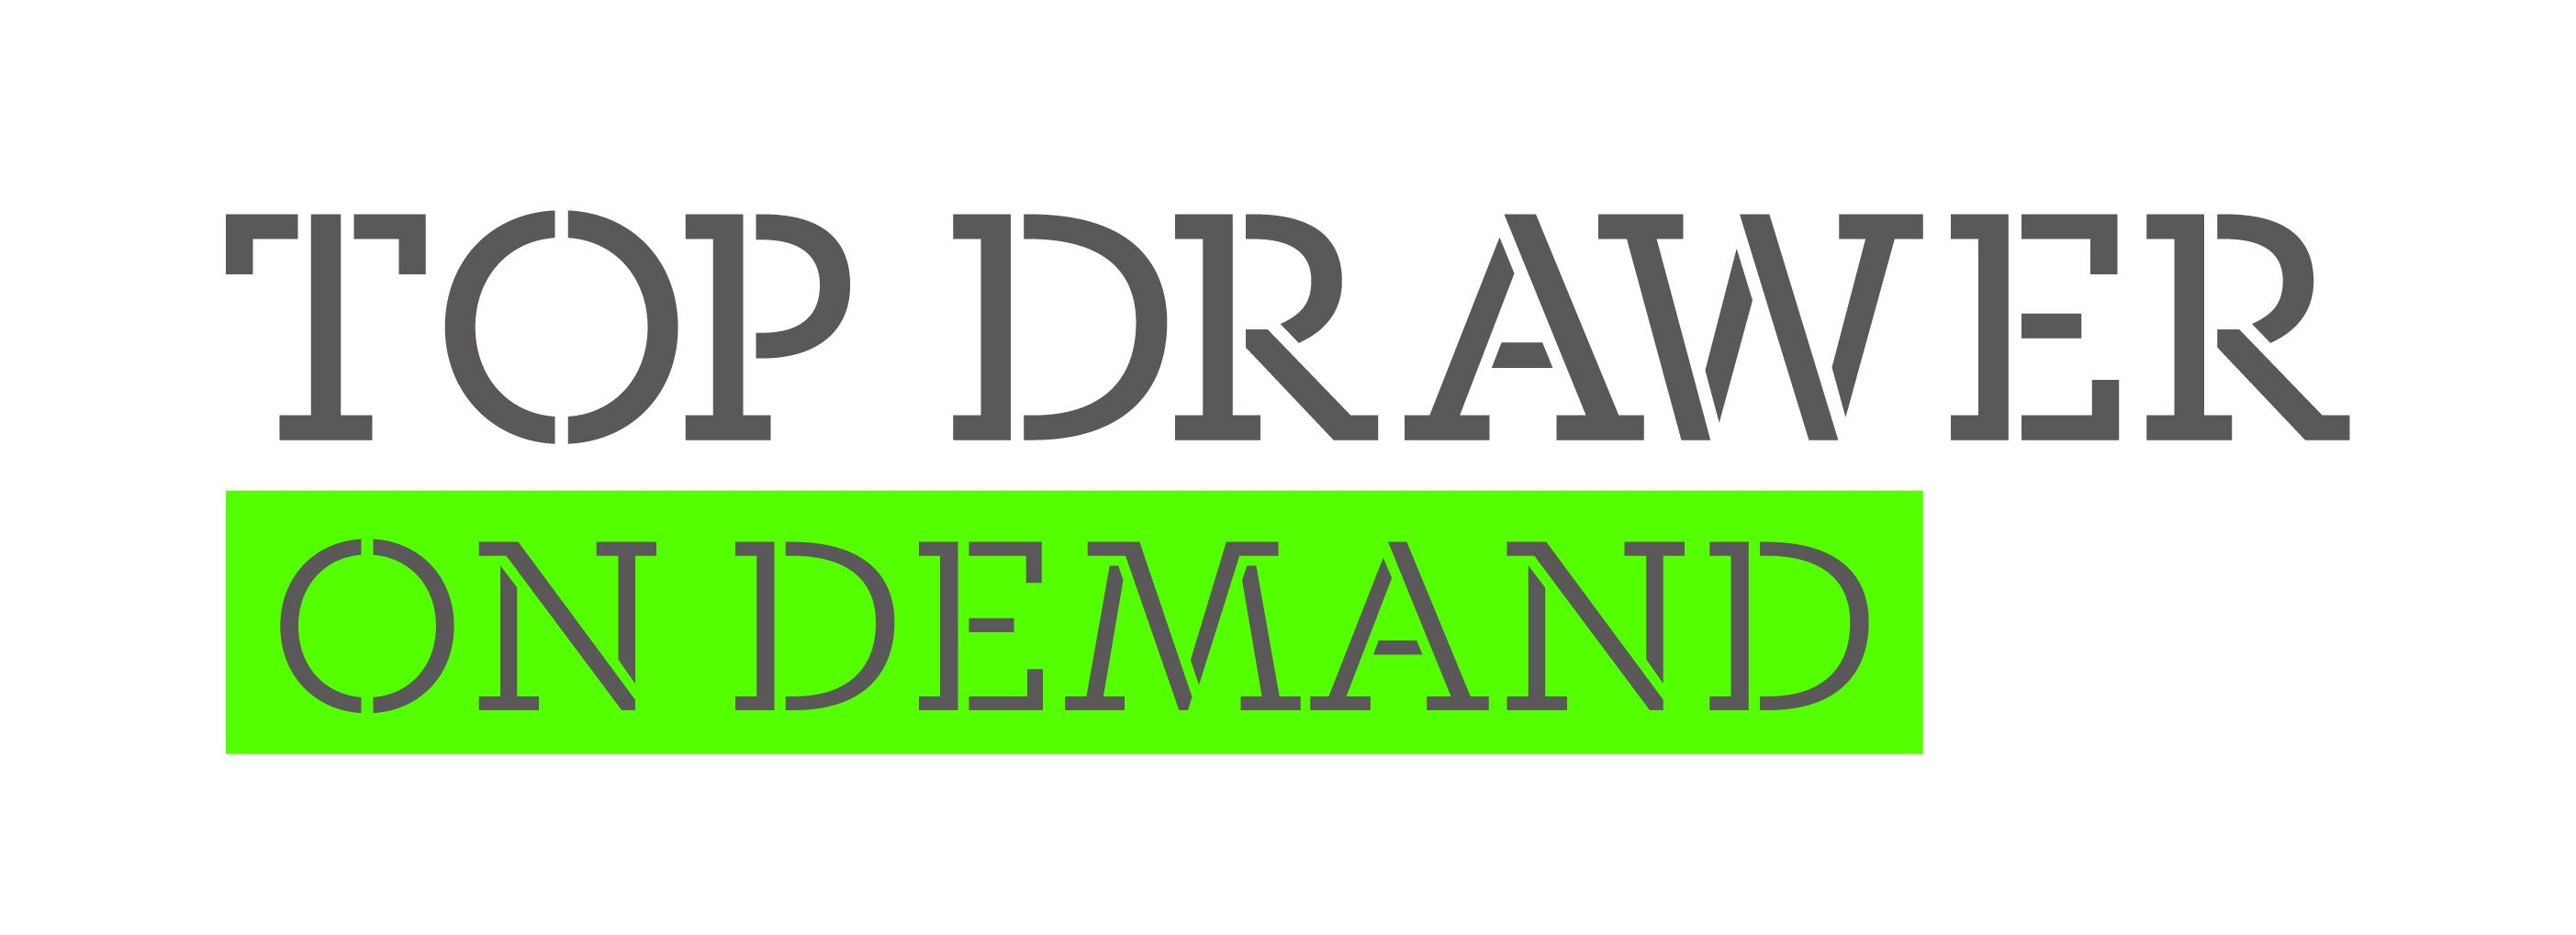 Top Drawer On Demand launched